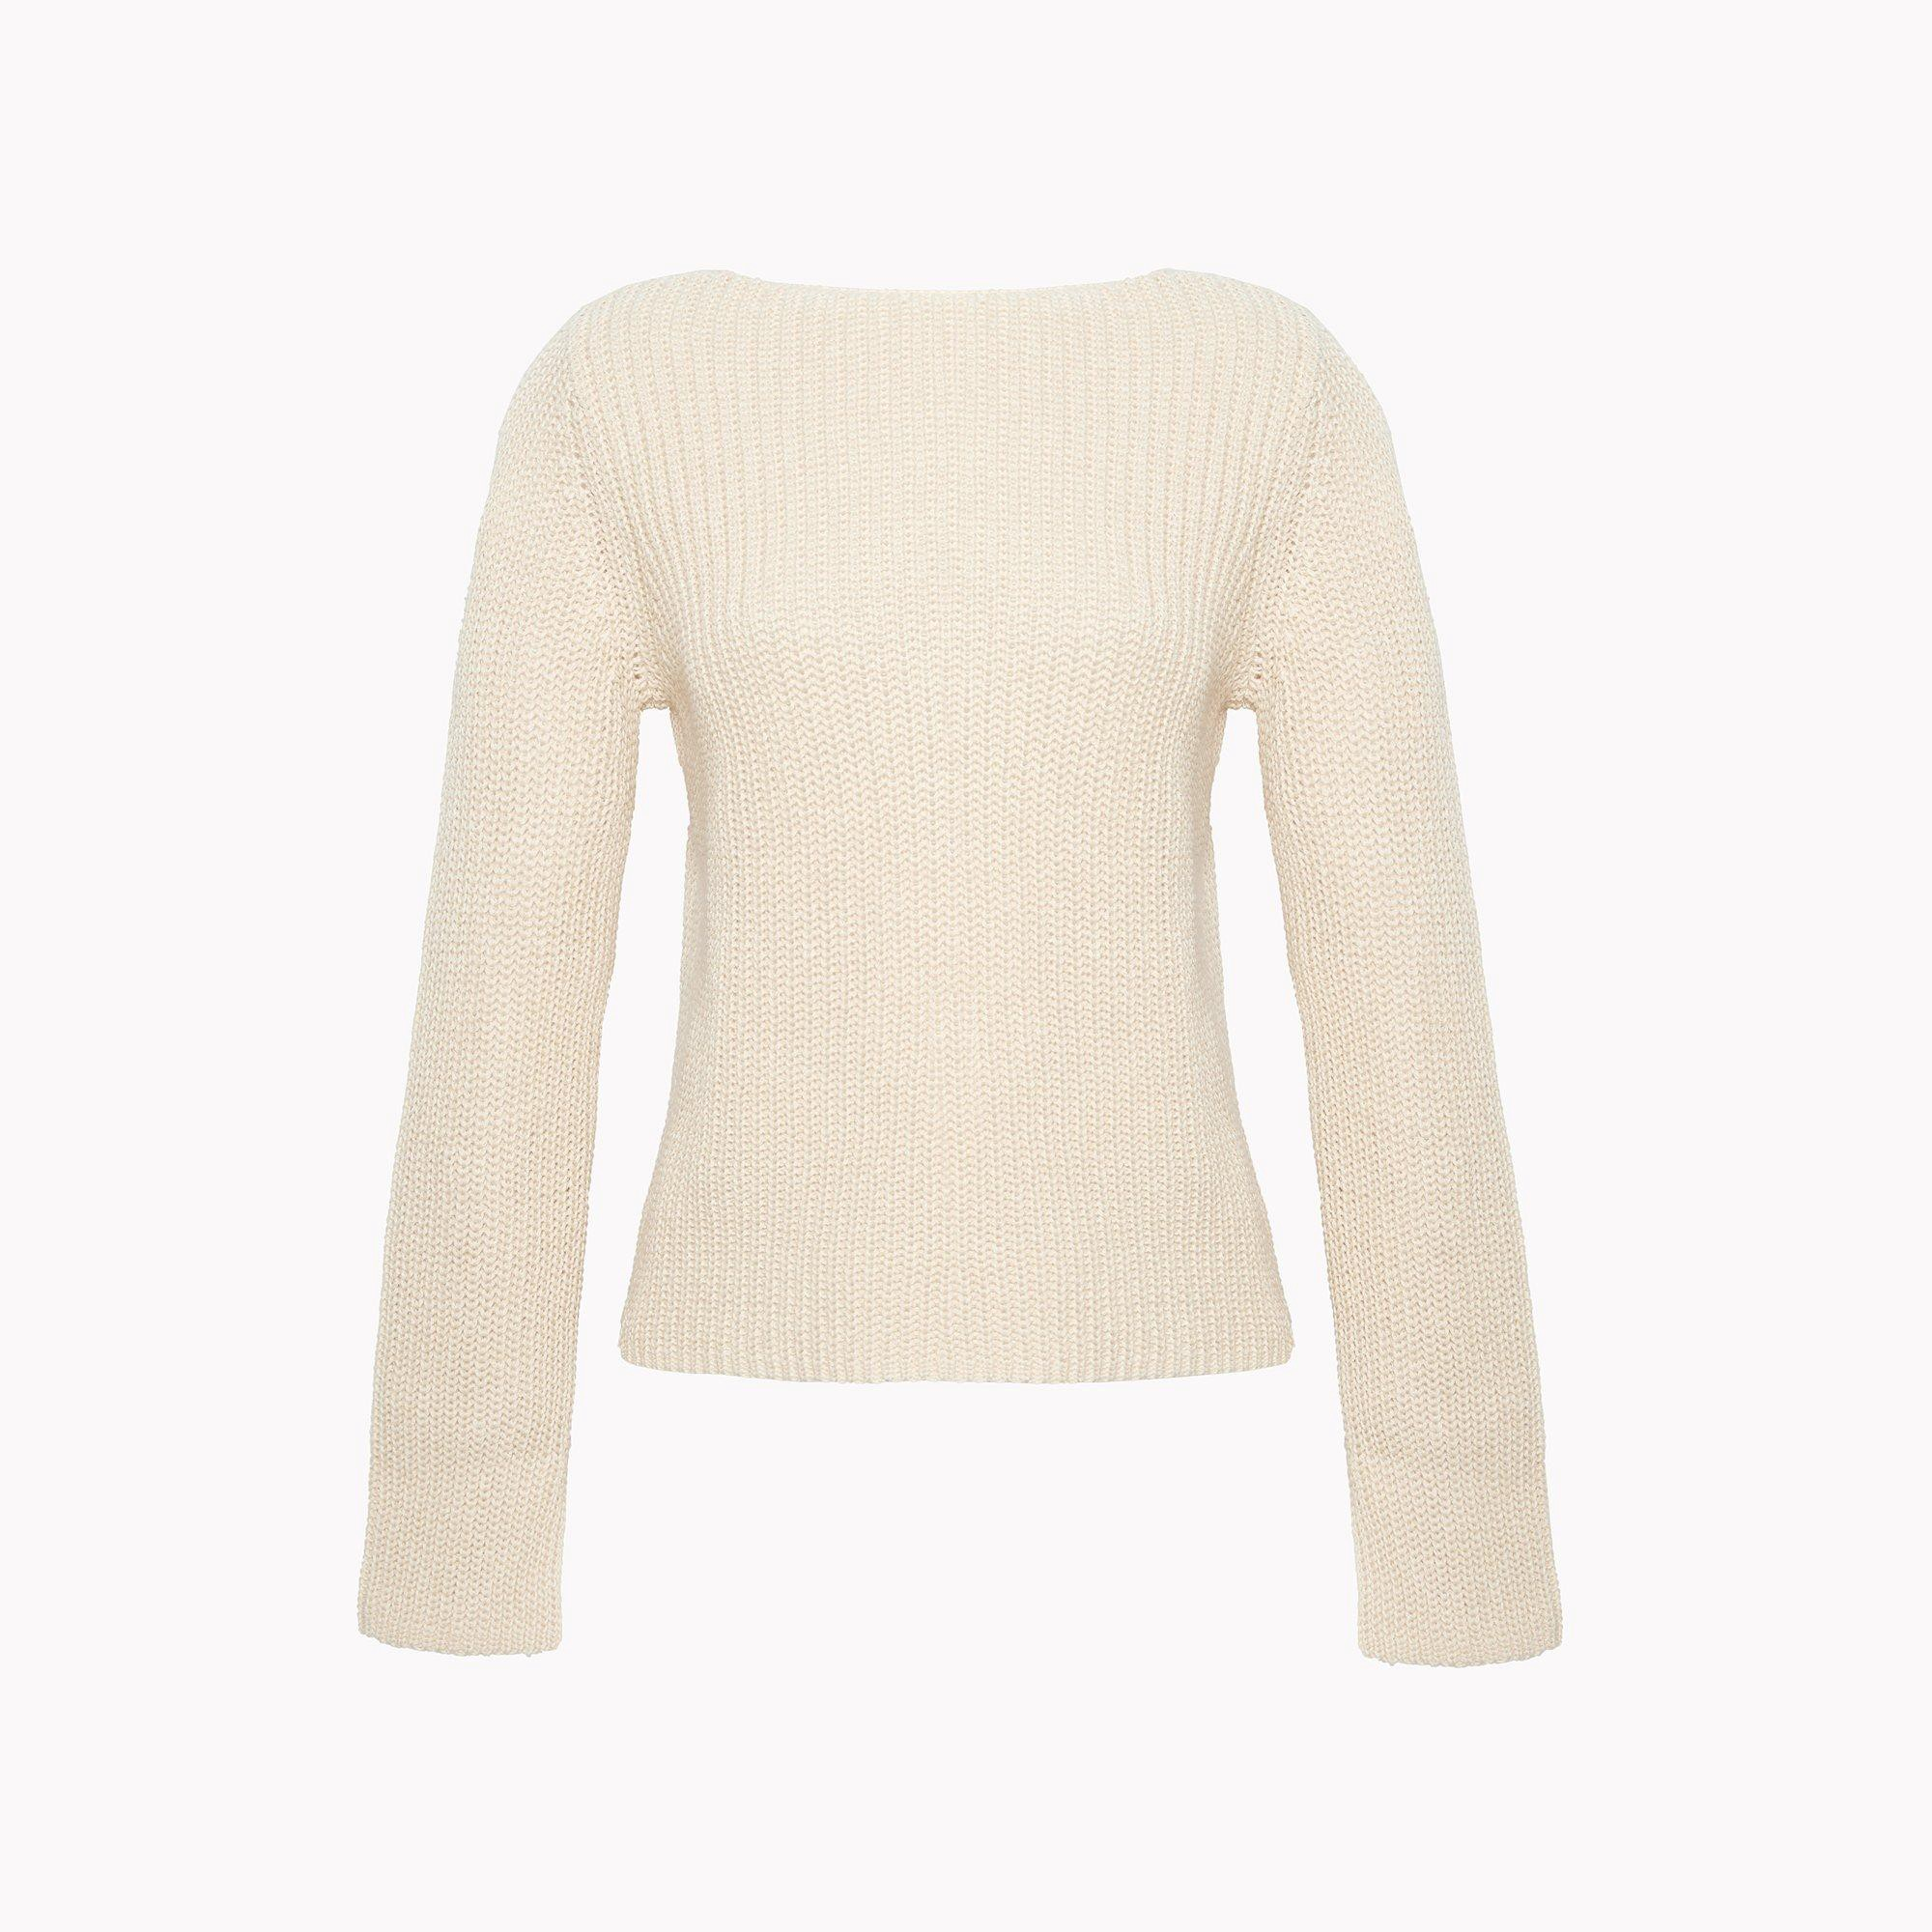 THEORY Relaxed Boat Neck Sweater - Shell White Mix